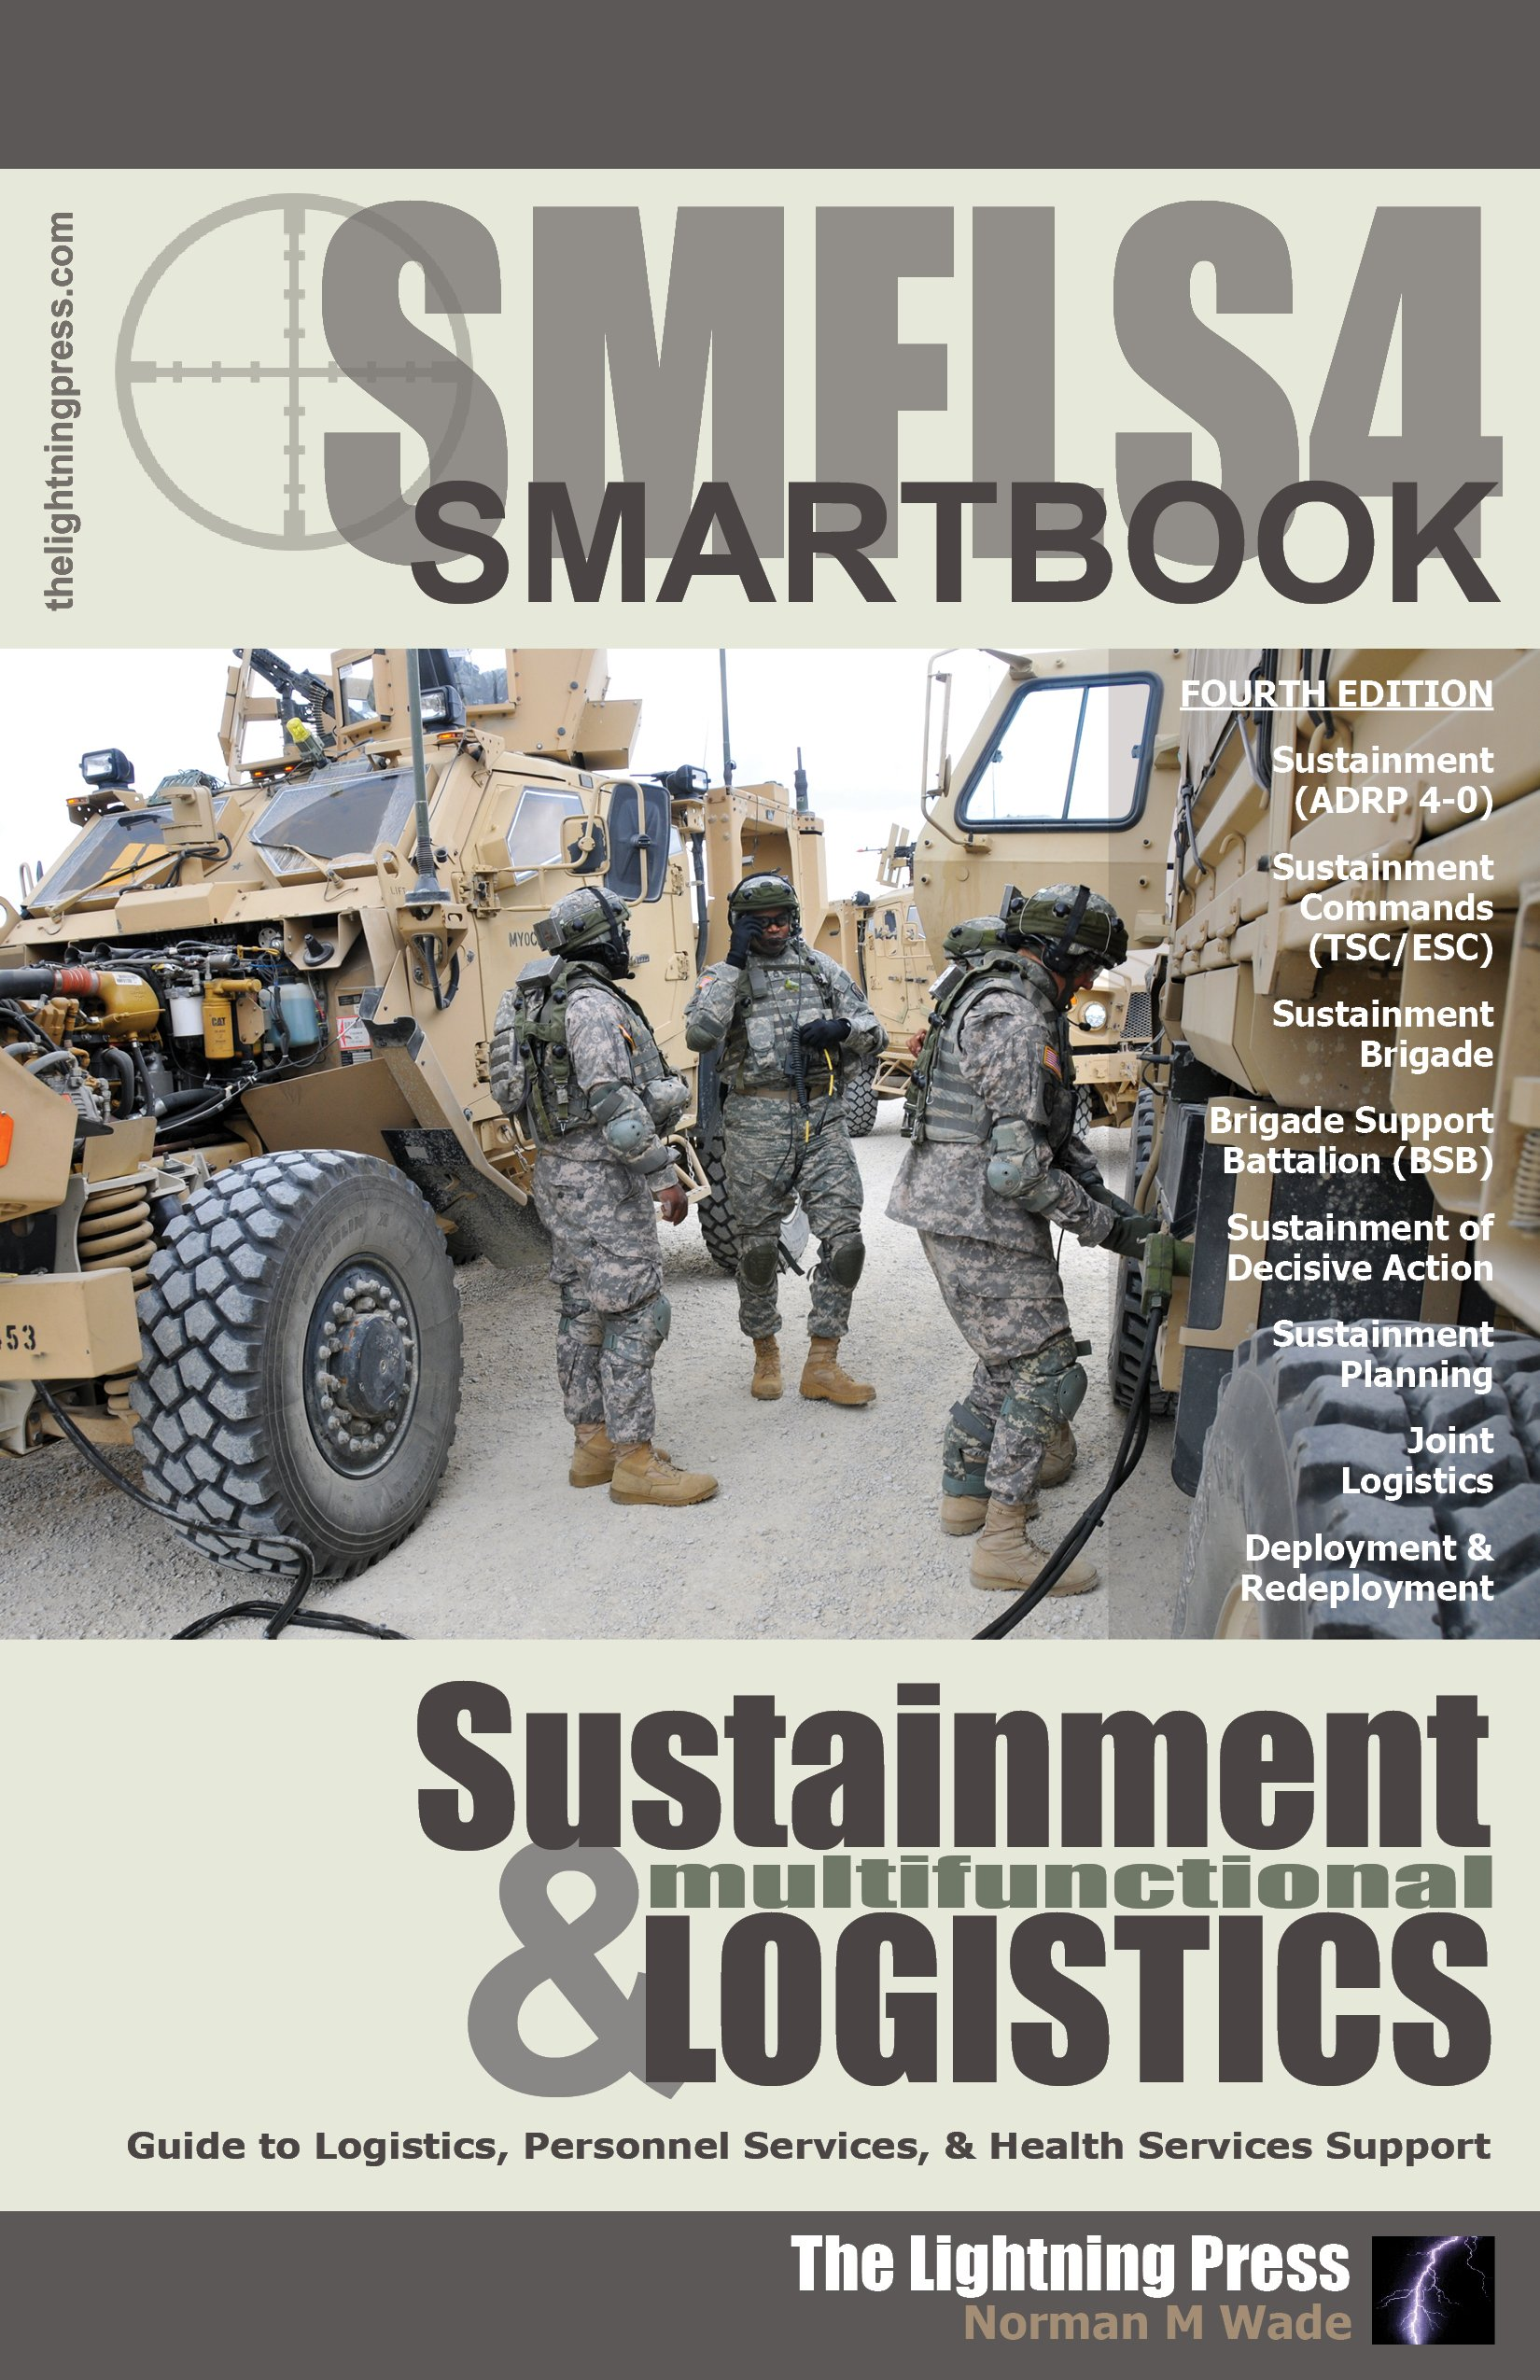 SMFLS4: Sustainment & Multifunctional Logistics SMARTbook, 4th Ed.